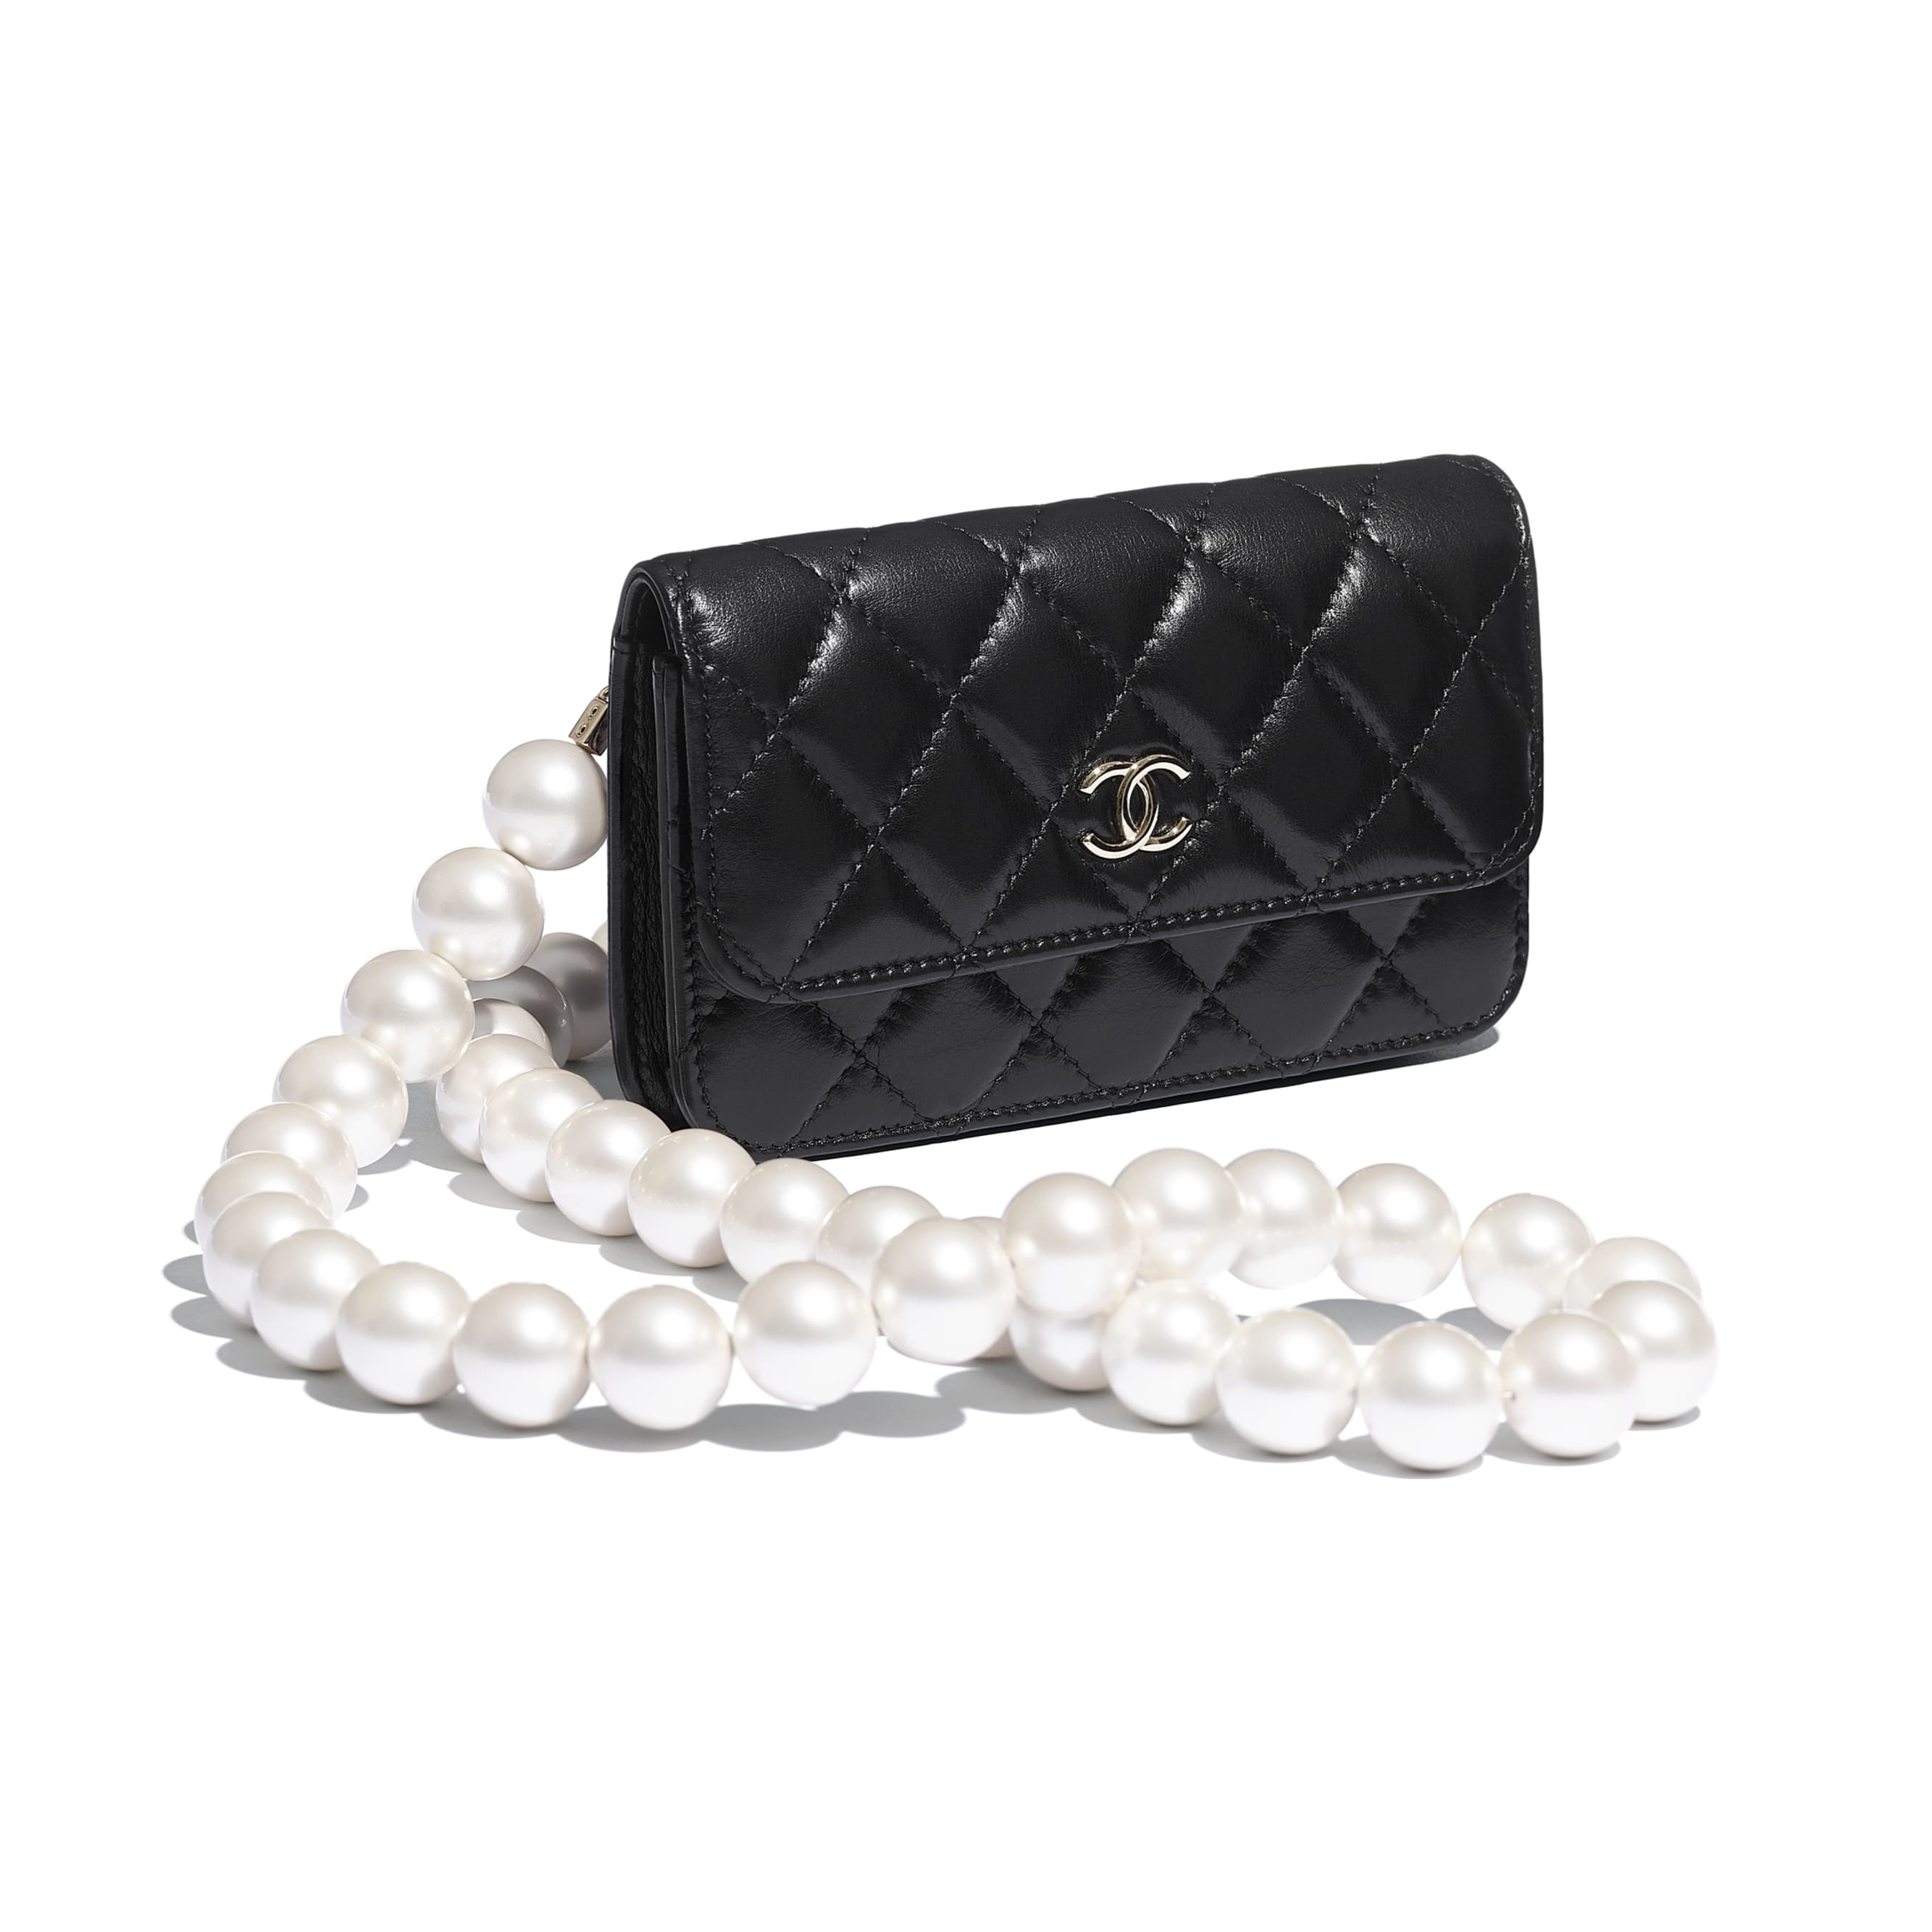 Clutch With Chain - Black - Calfskin, Imitation Pearls & Gold-Tone Metal - CHANEL - Extra view - see standard sized version